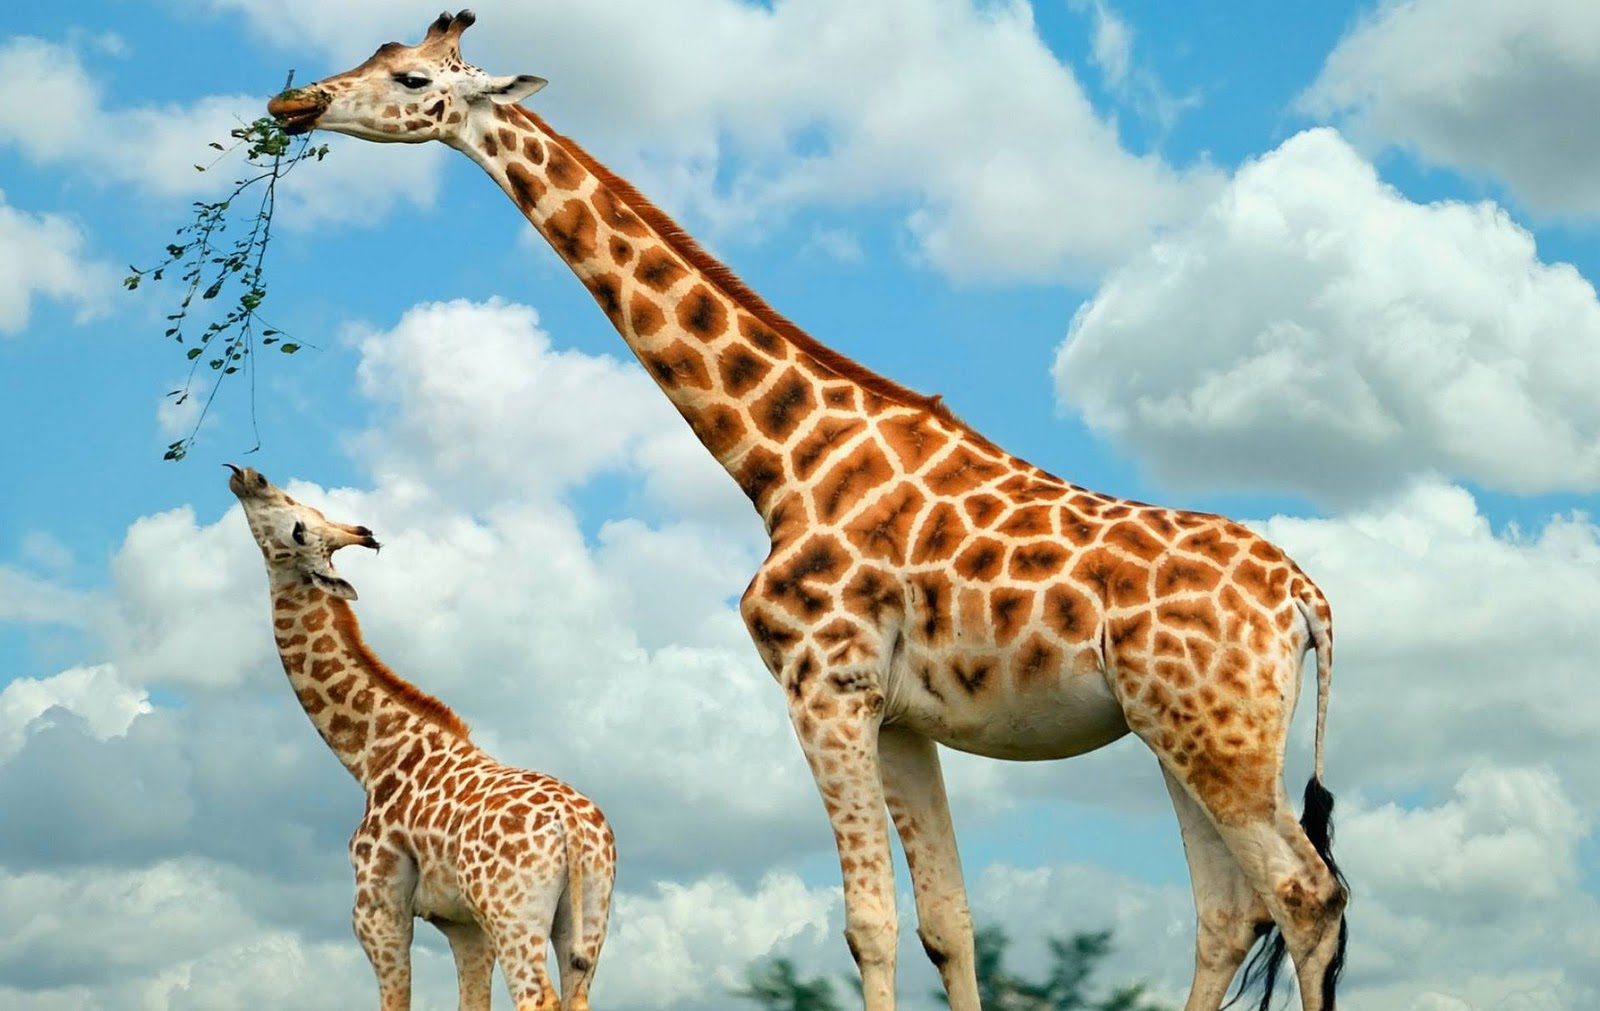 giraffe wallpapers hd pictures - photo #3